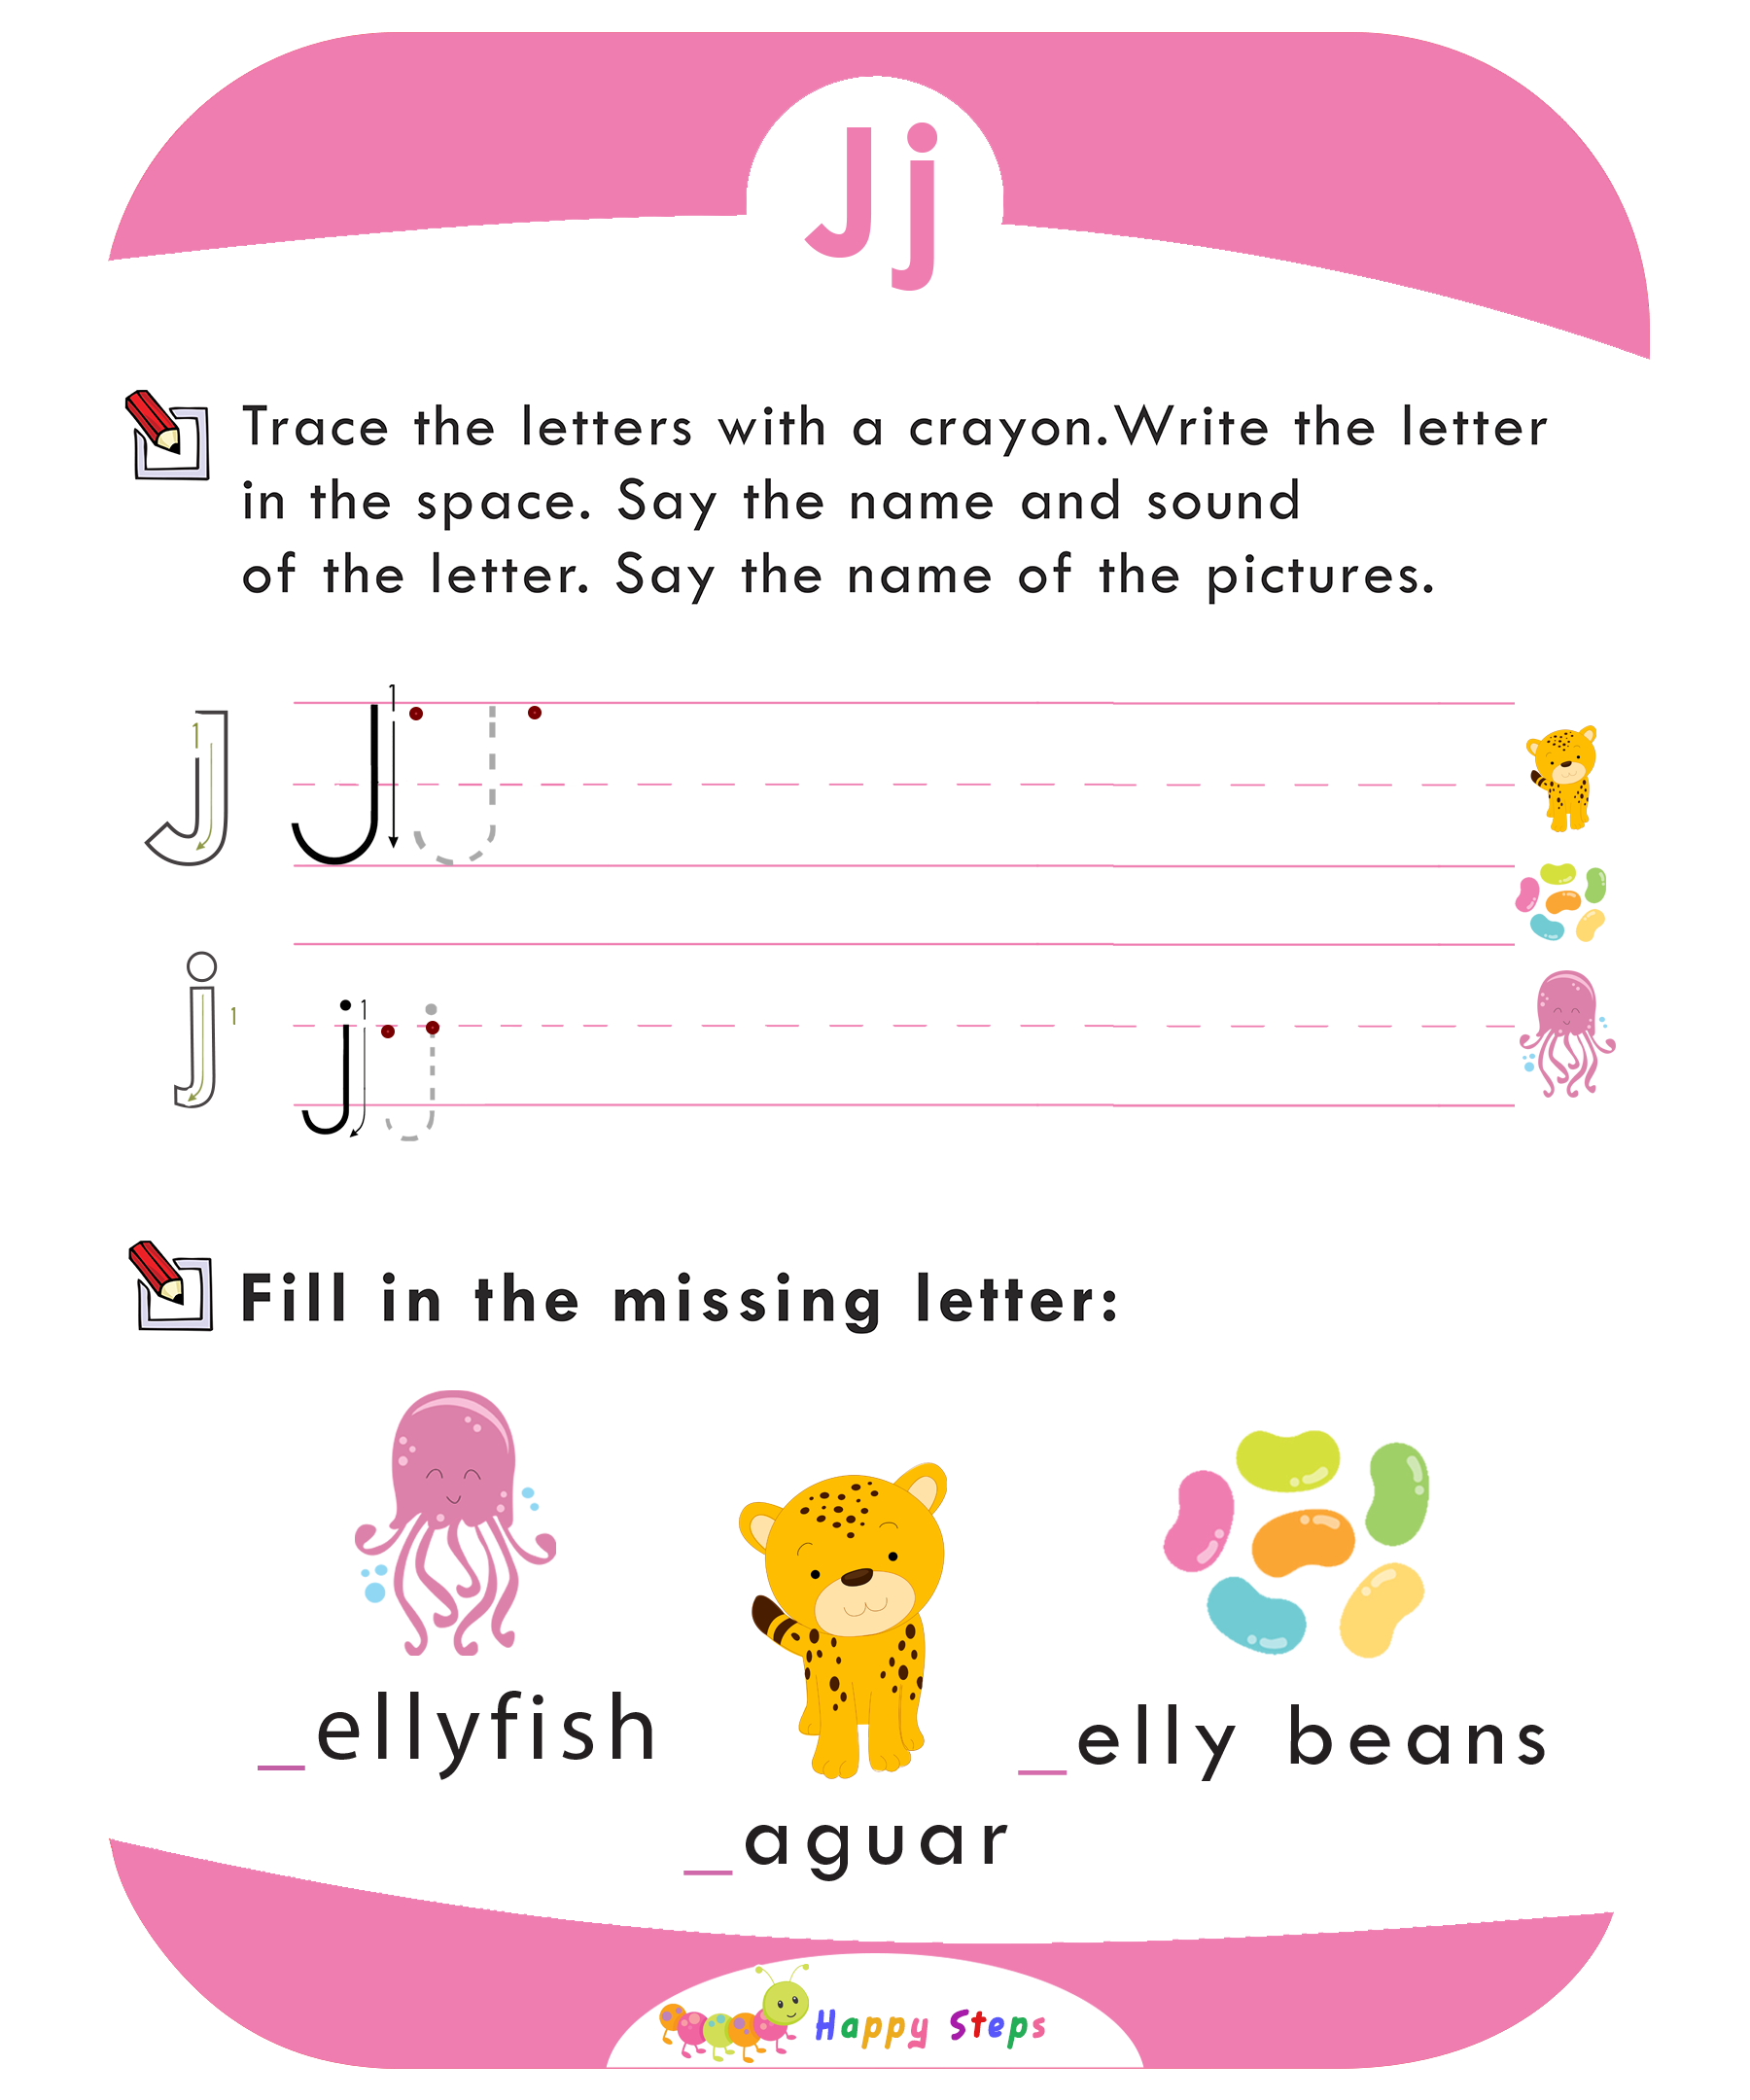 Activity Worksheet 2 Letter J